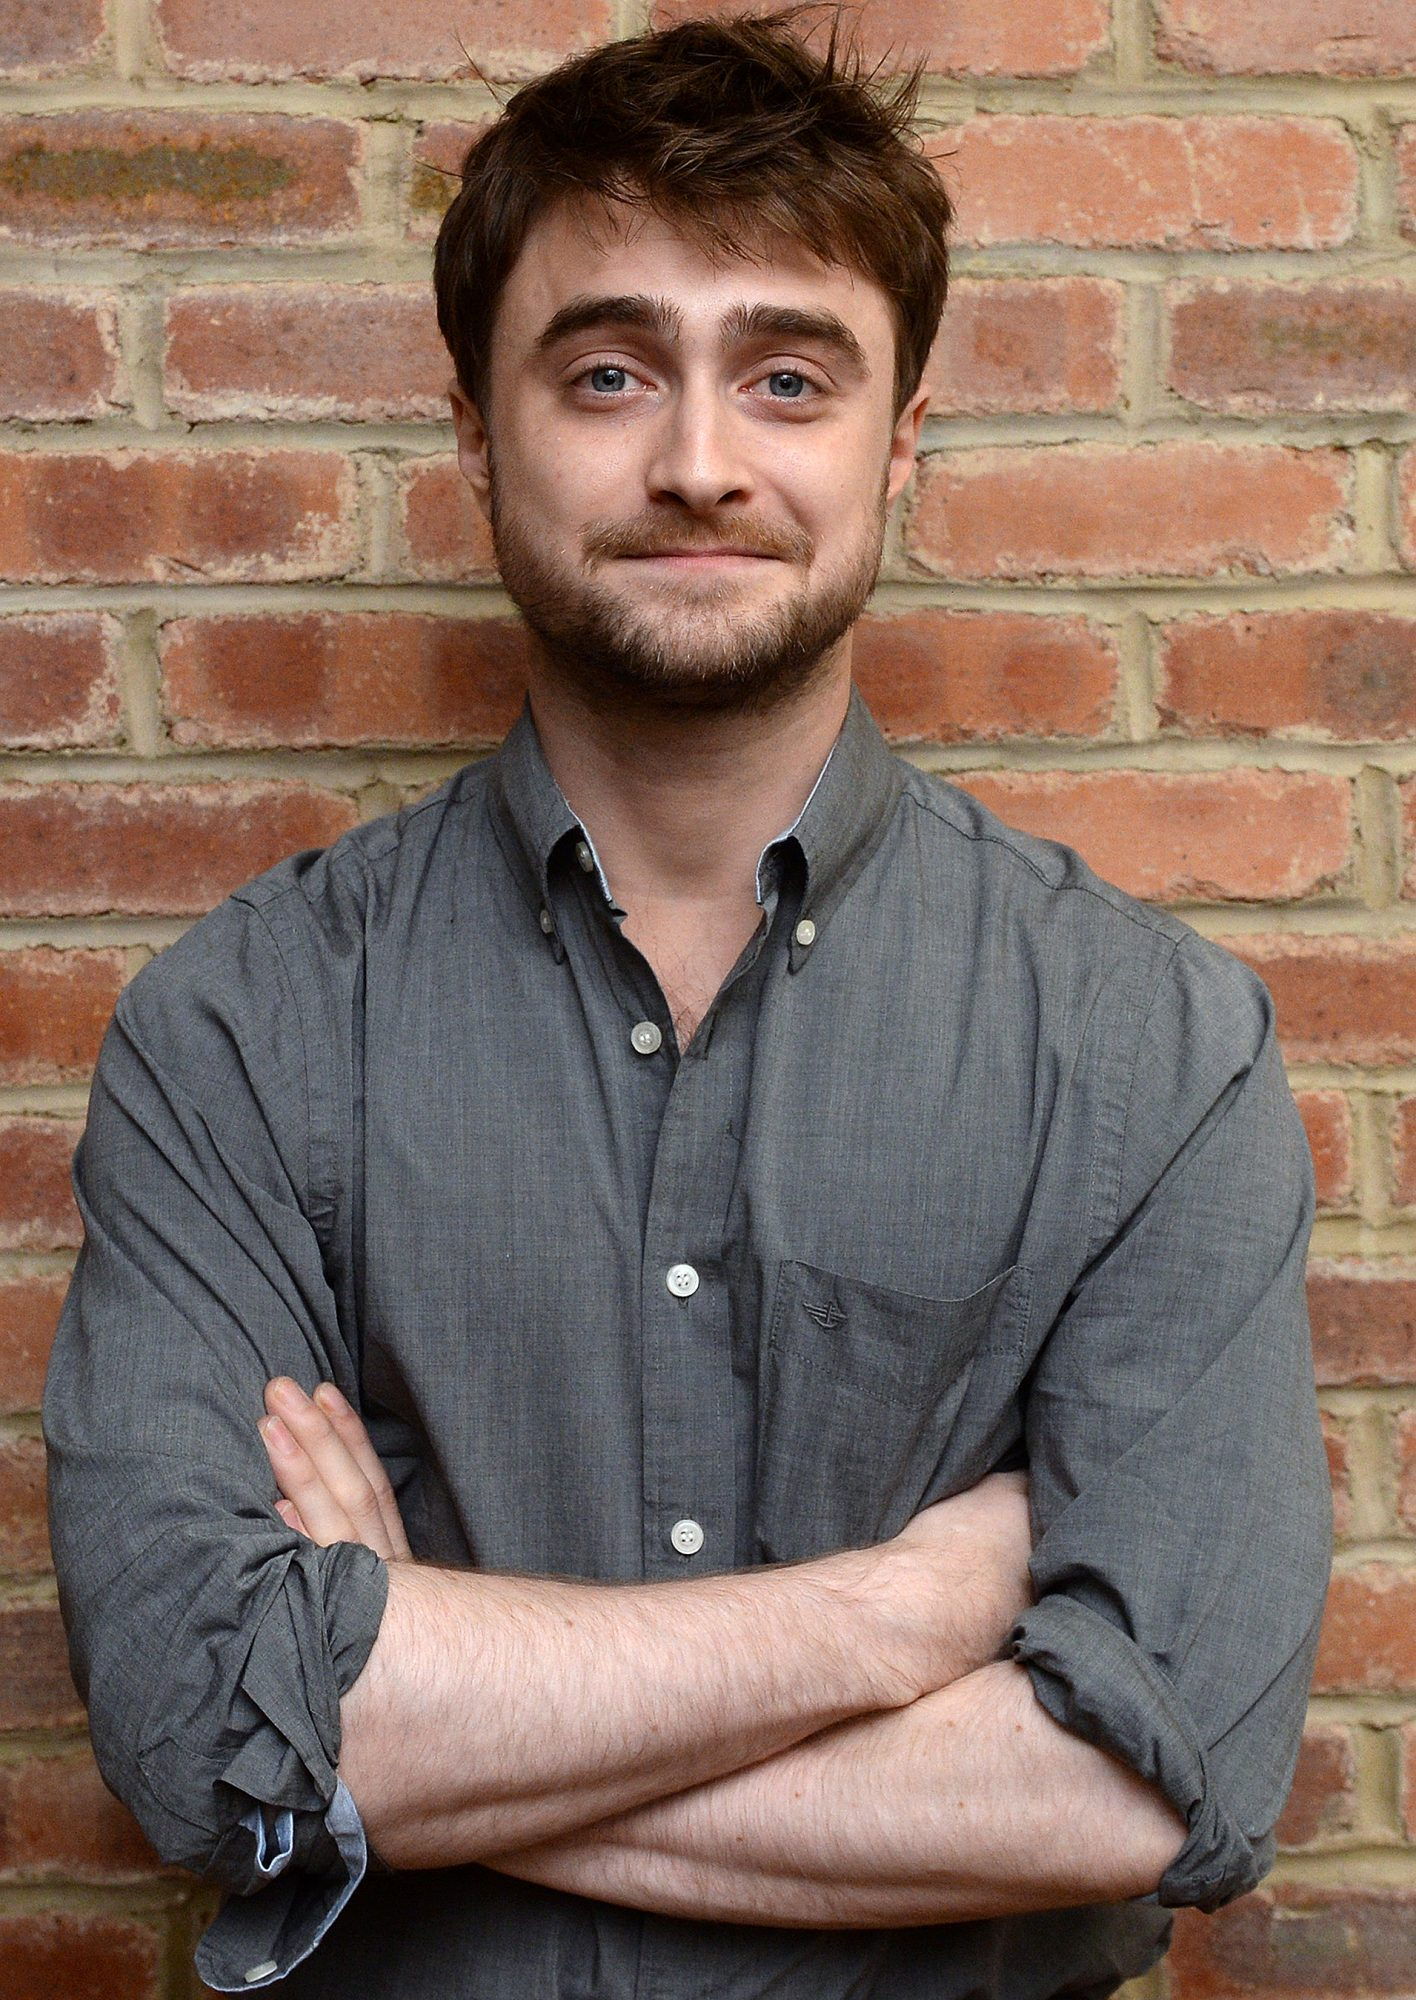 Daniel Radcliffe: It's Tempting to Turn to Alcohol to Cope With Scrutiny